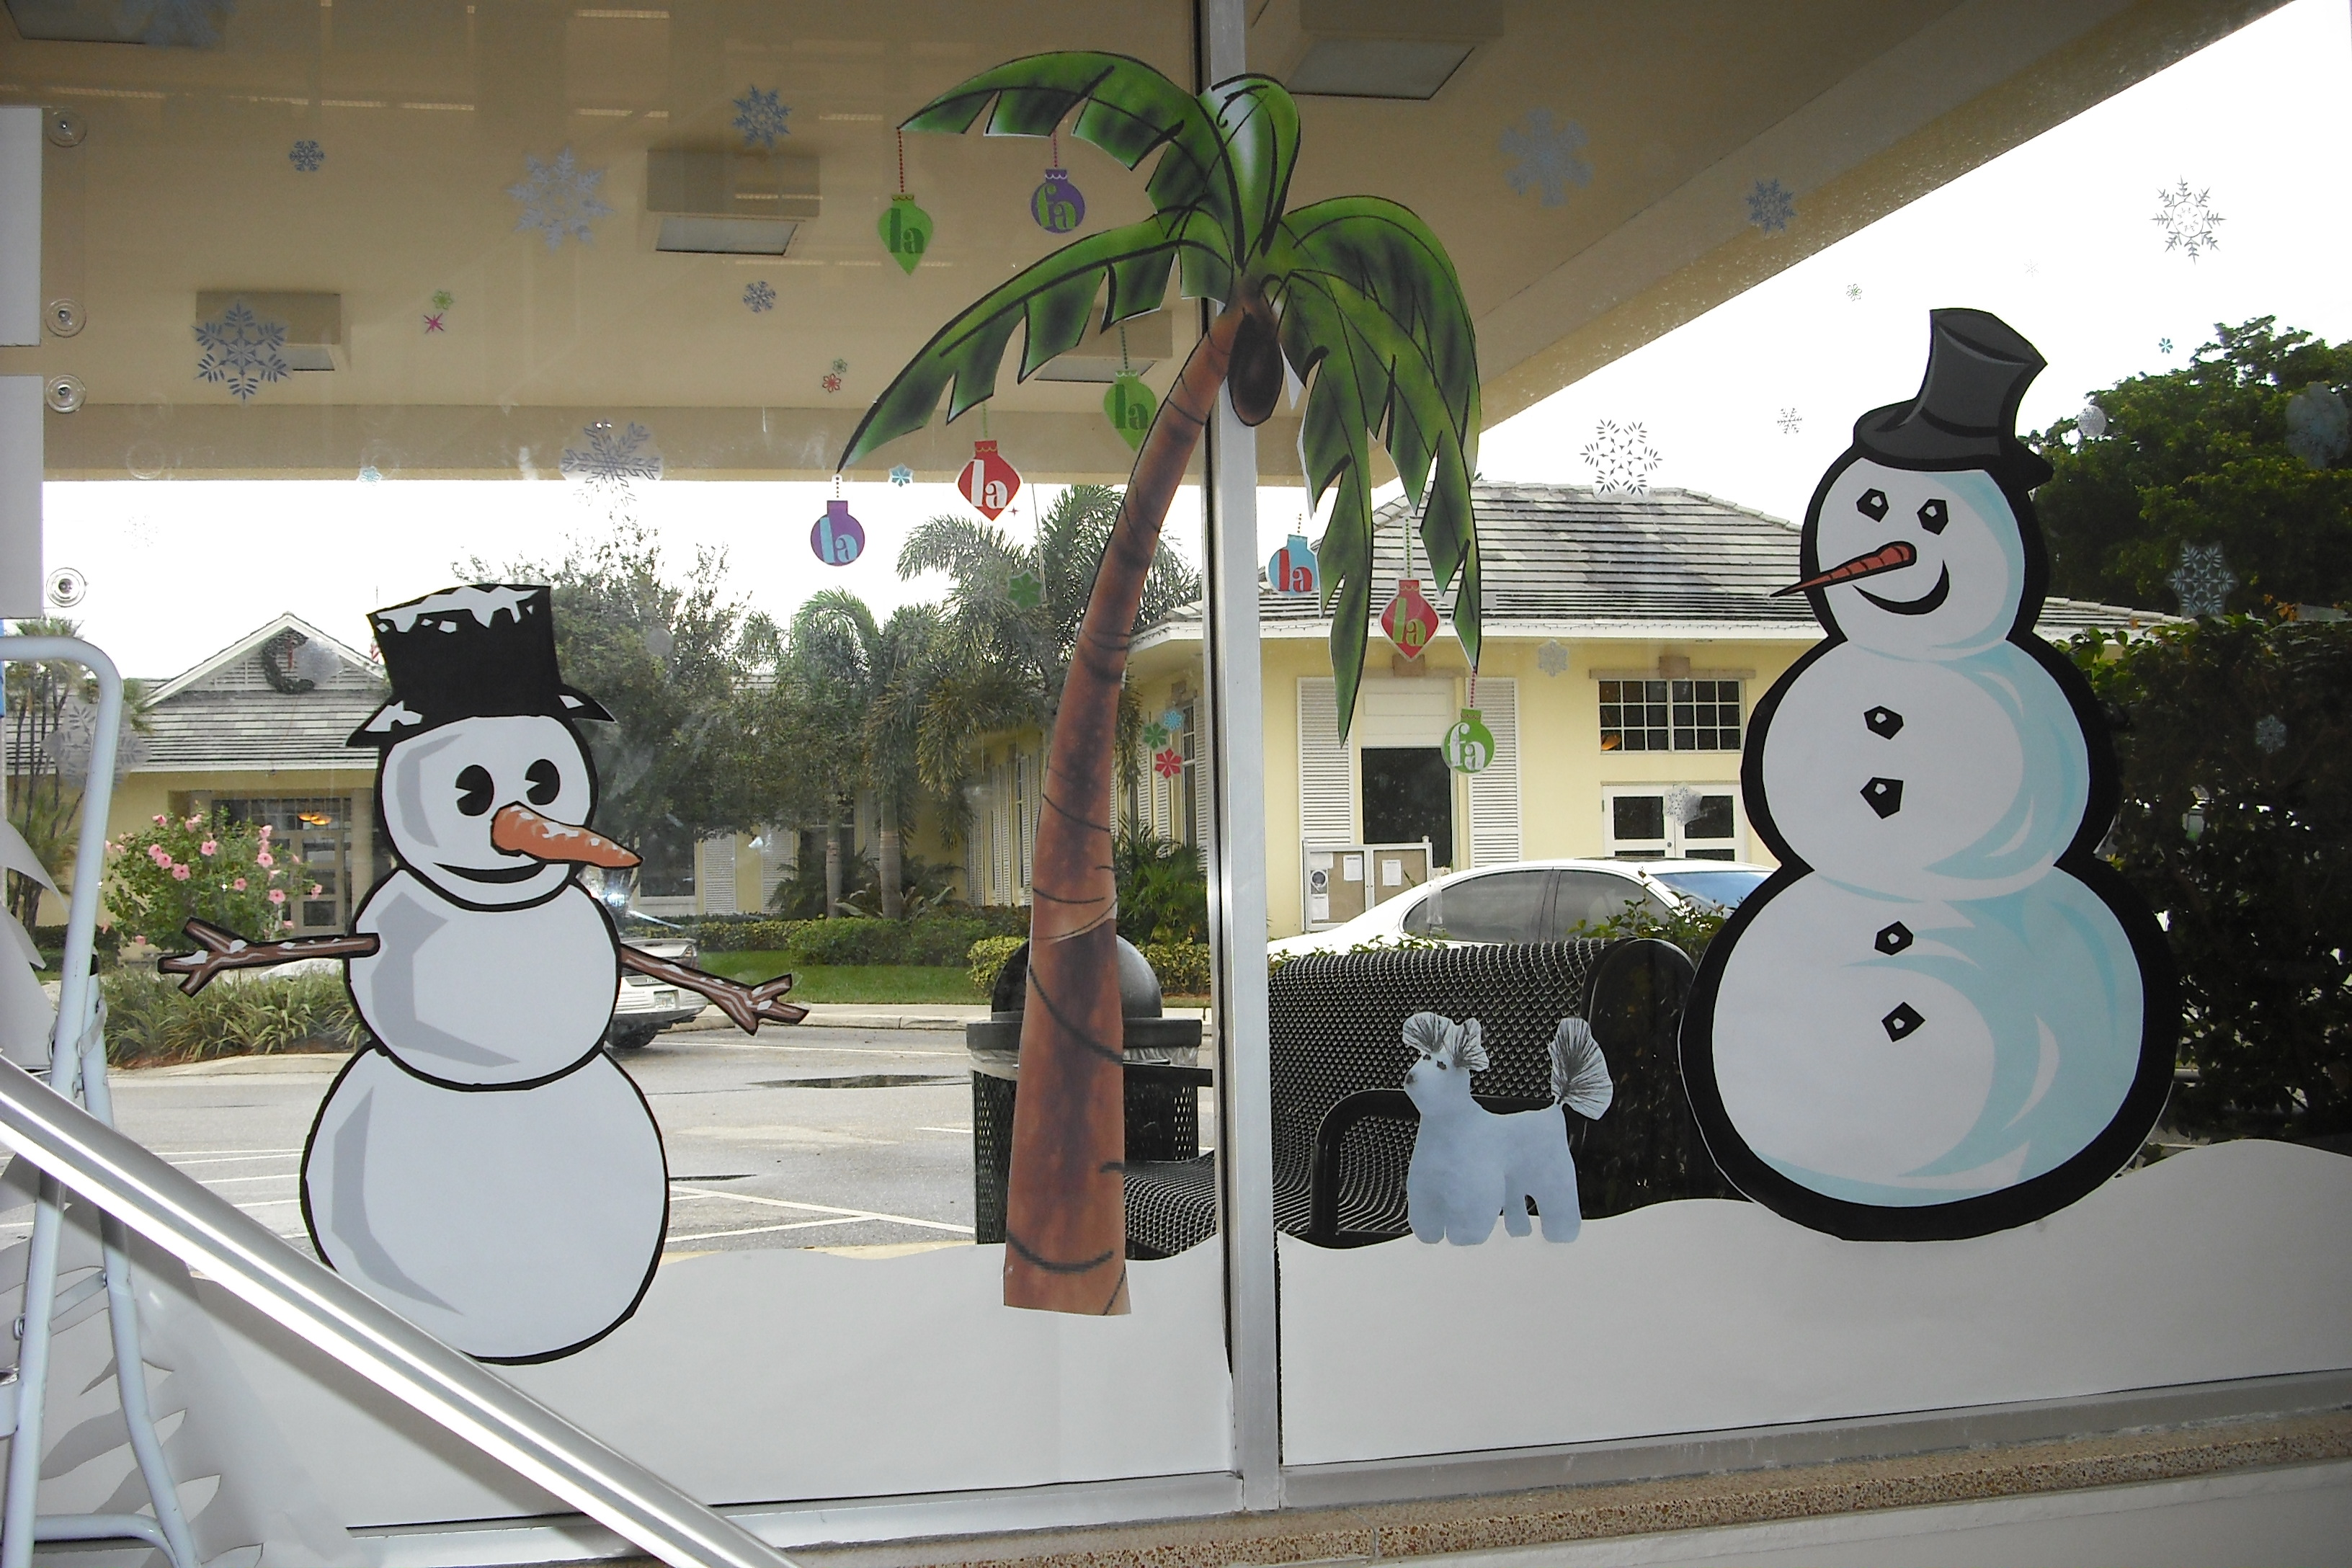 Snowmen gather around a festive palm tree